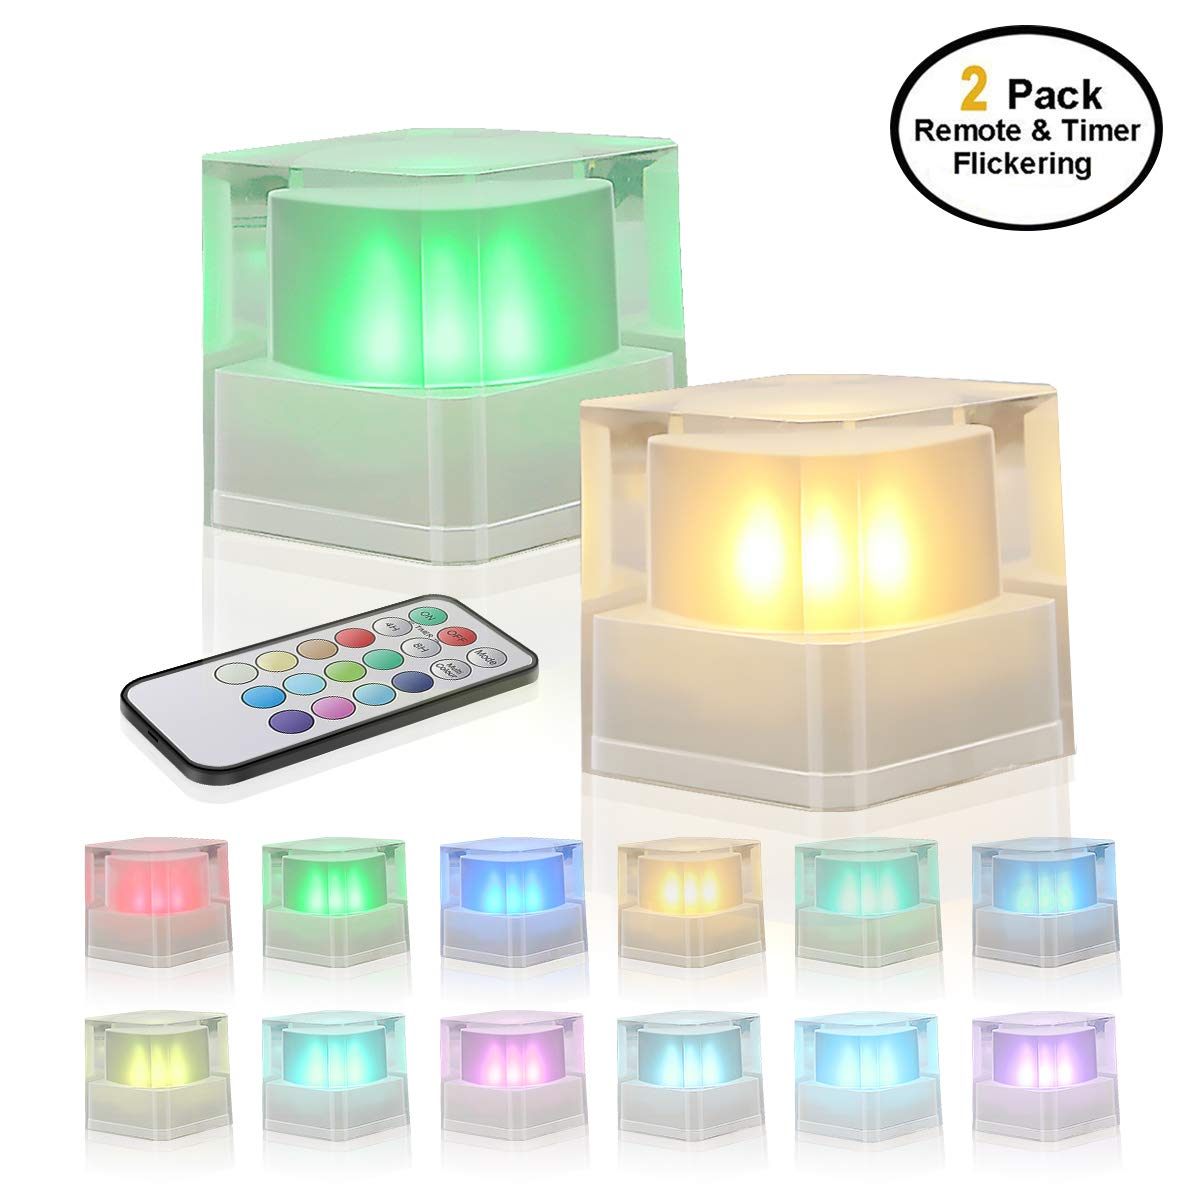 Night Lights with Timer and Remote Decorative Lights for Bedroom Home Decor 2 Packs GameXcel Battery Operated Crystal Lights Color Changing Flamess Candles LED Cube Lights Flickering Mood Lamp